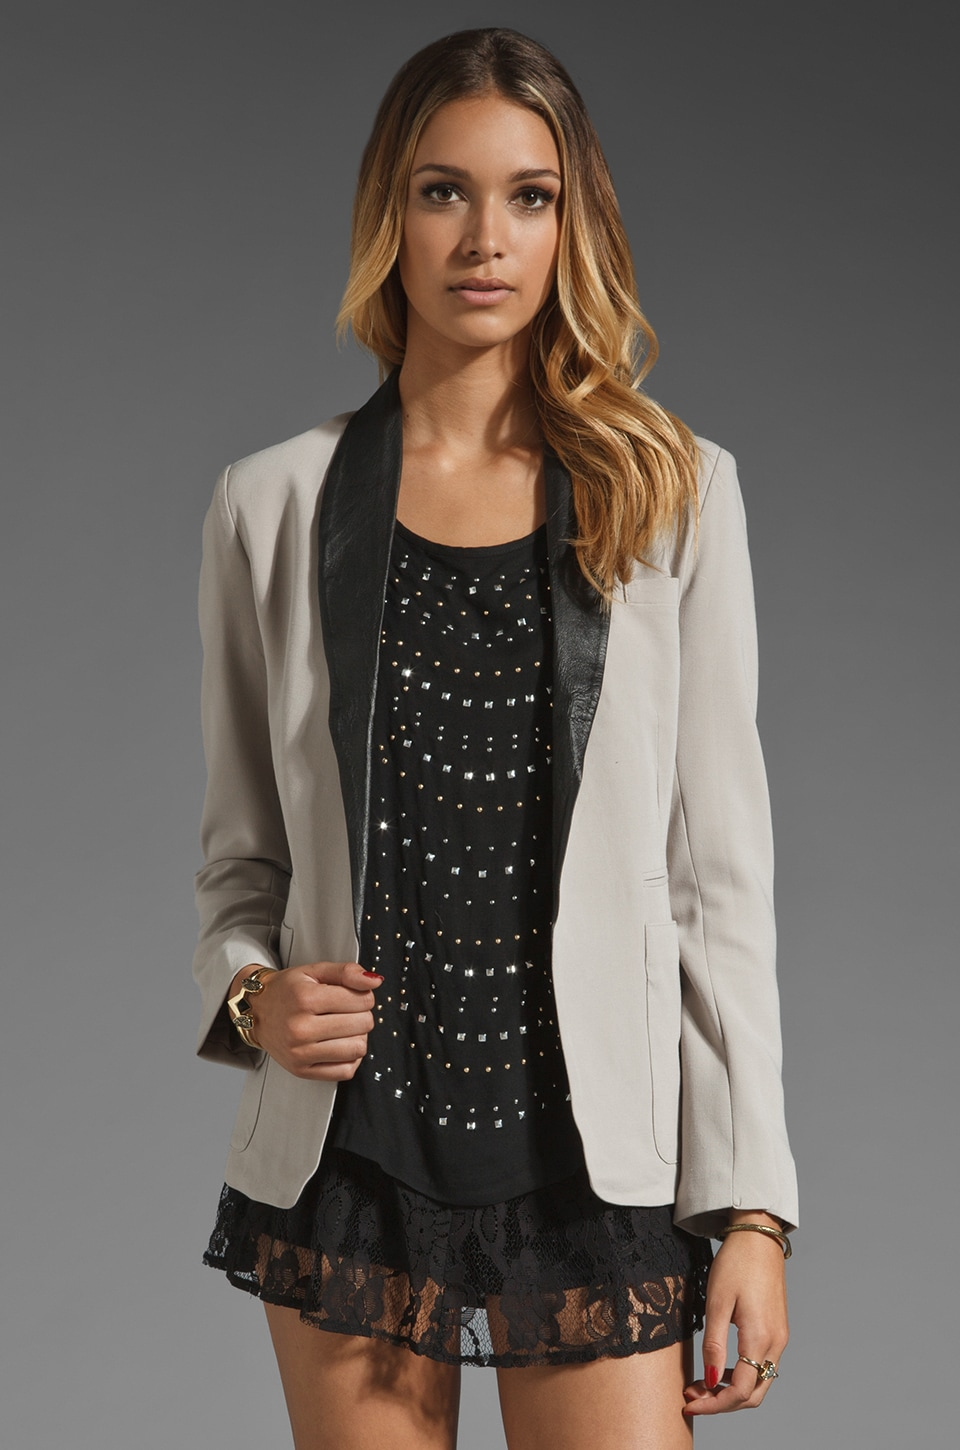 BB Dakota Steward Leather Lapel Blazer in Greige Grey